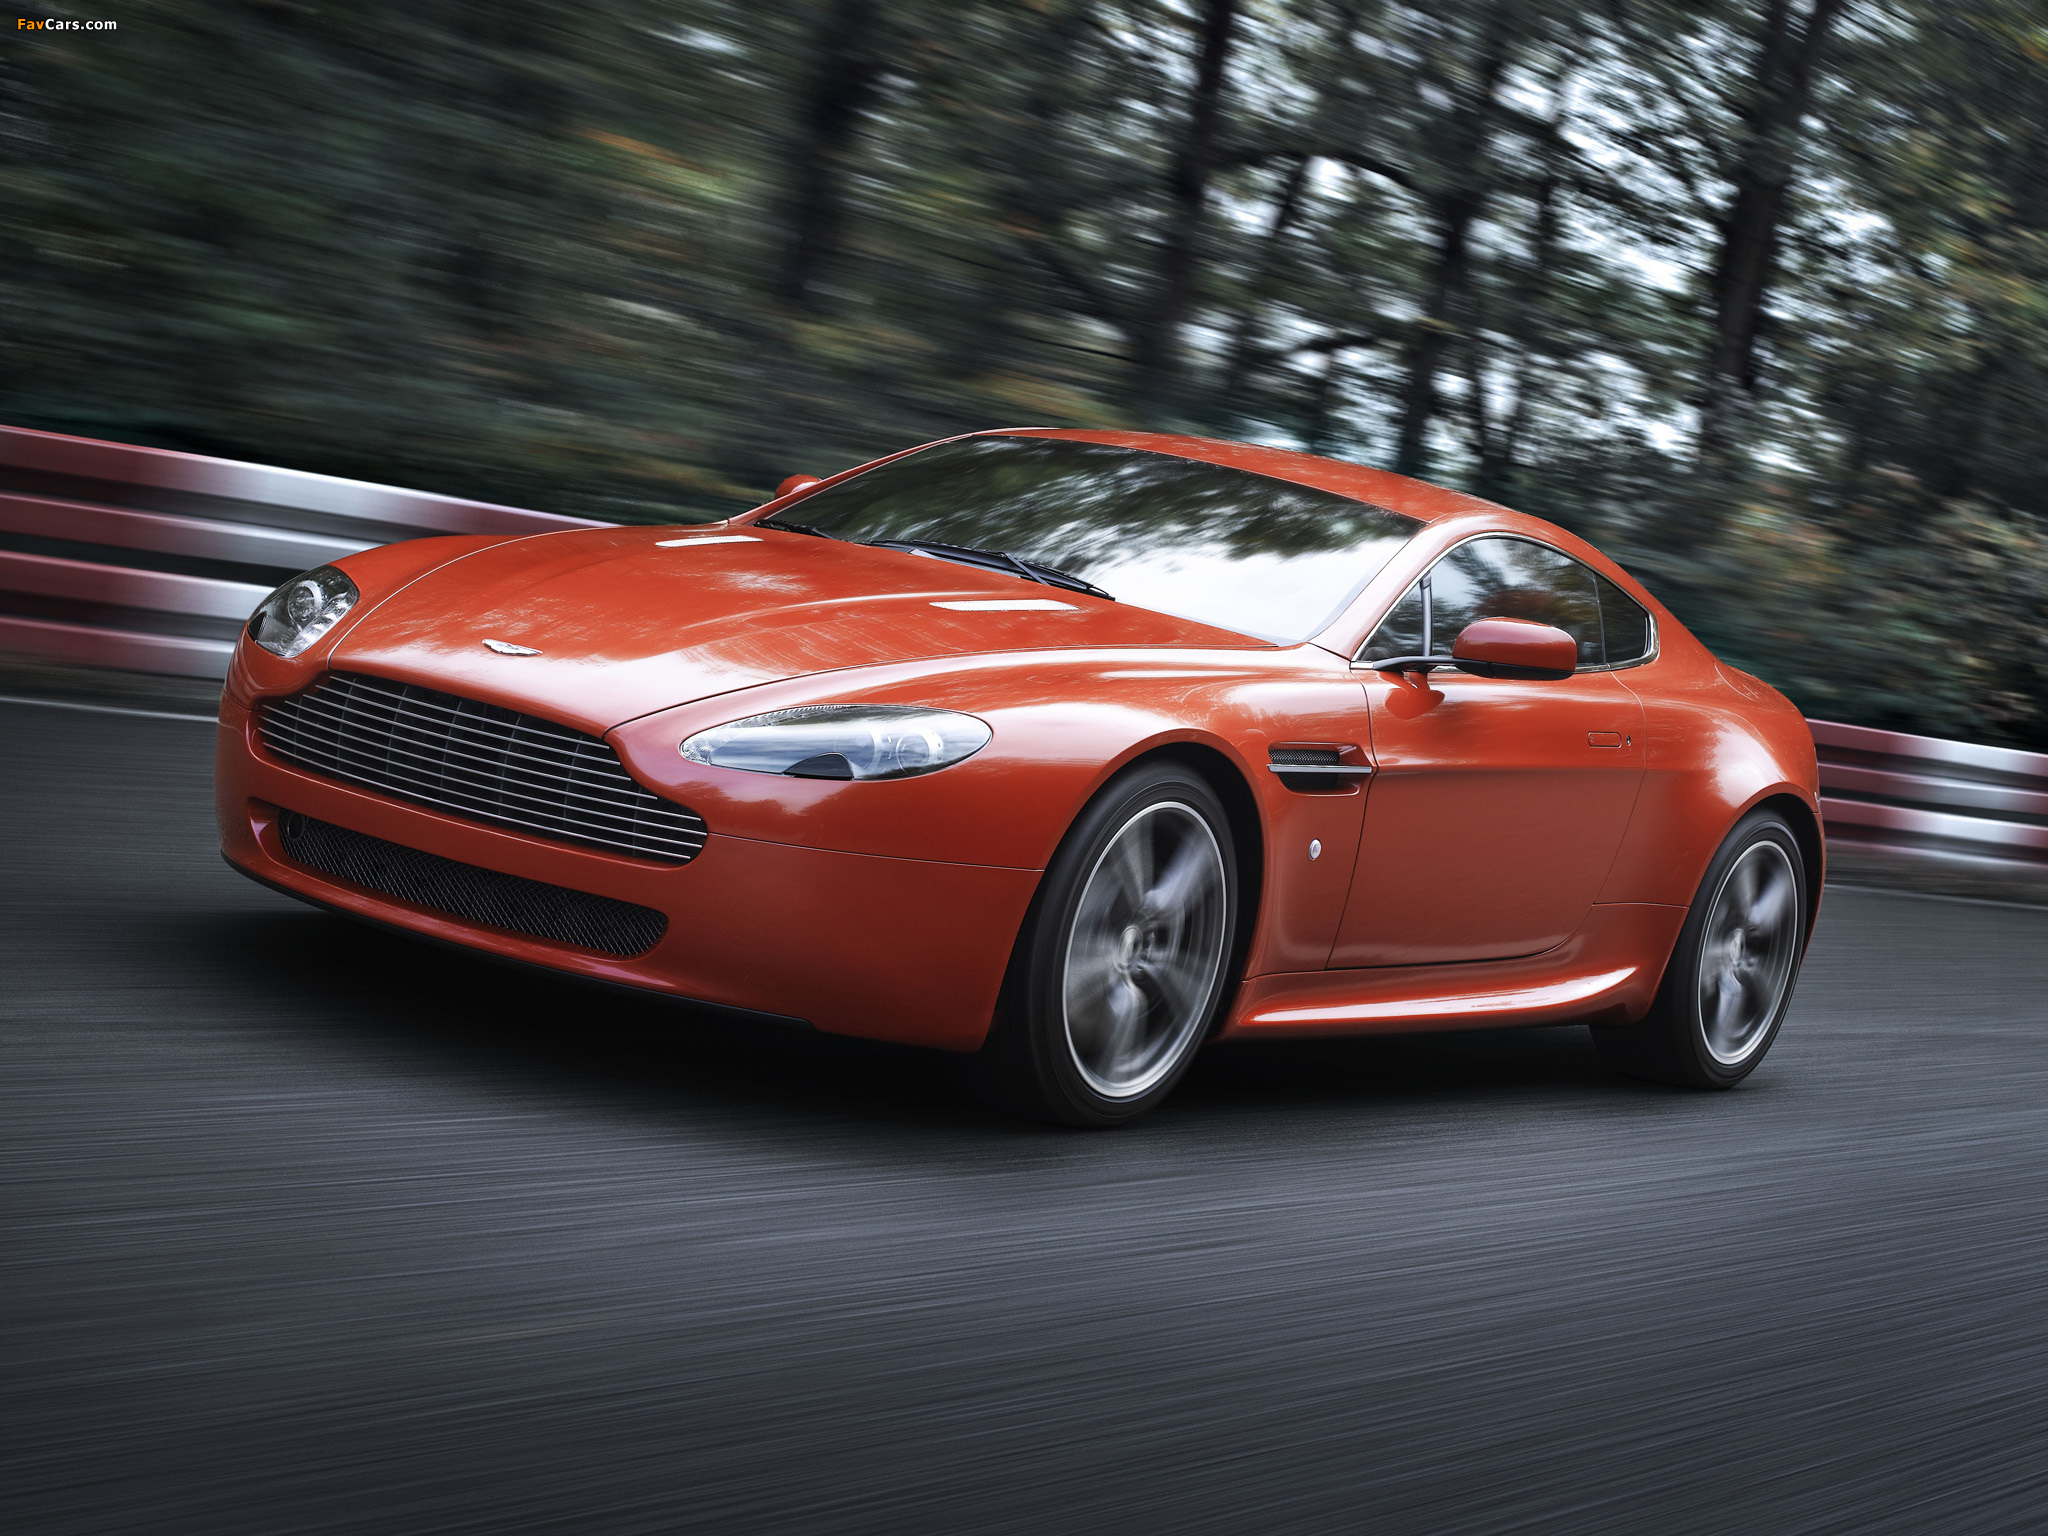 Aston Martin V8 Vantage N400 2008 Photos 2048x1536 HD Wallpapers Download free images and photos [musssic.tk]